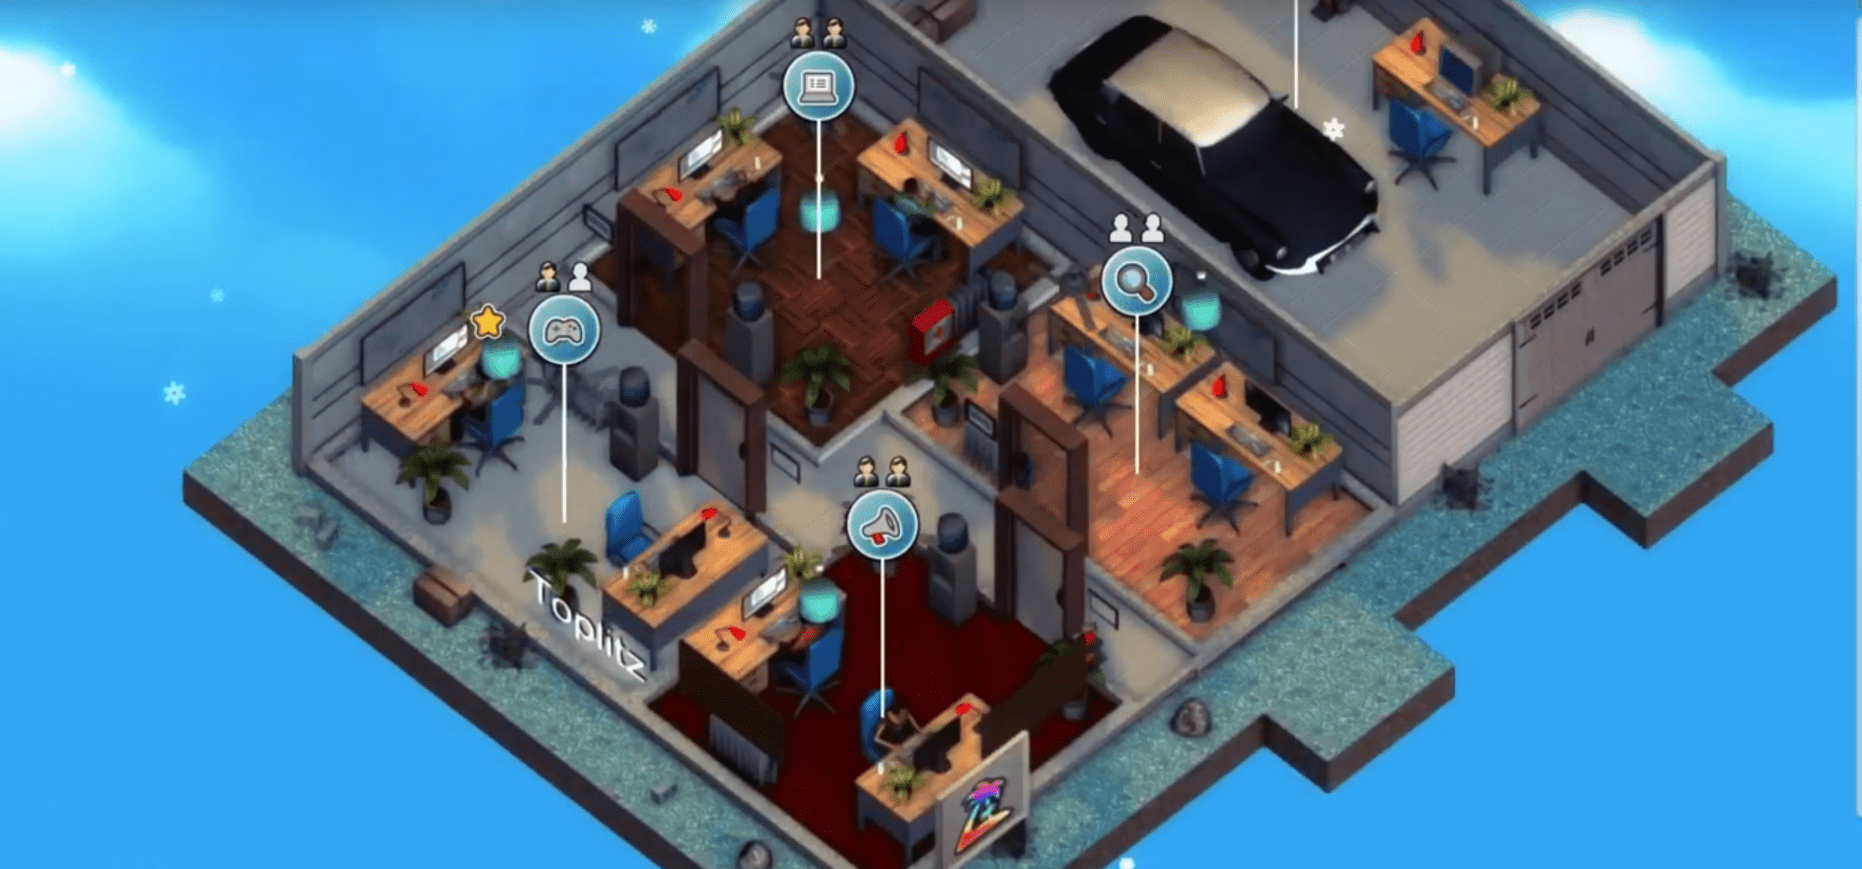 Mad Games Tycoon Allows Players To Build A Gaming Empire, From Humble Beginnings To Having It All